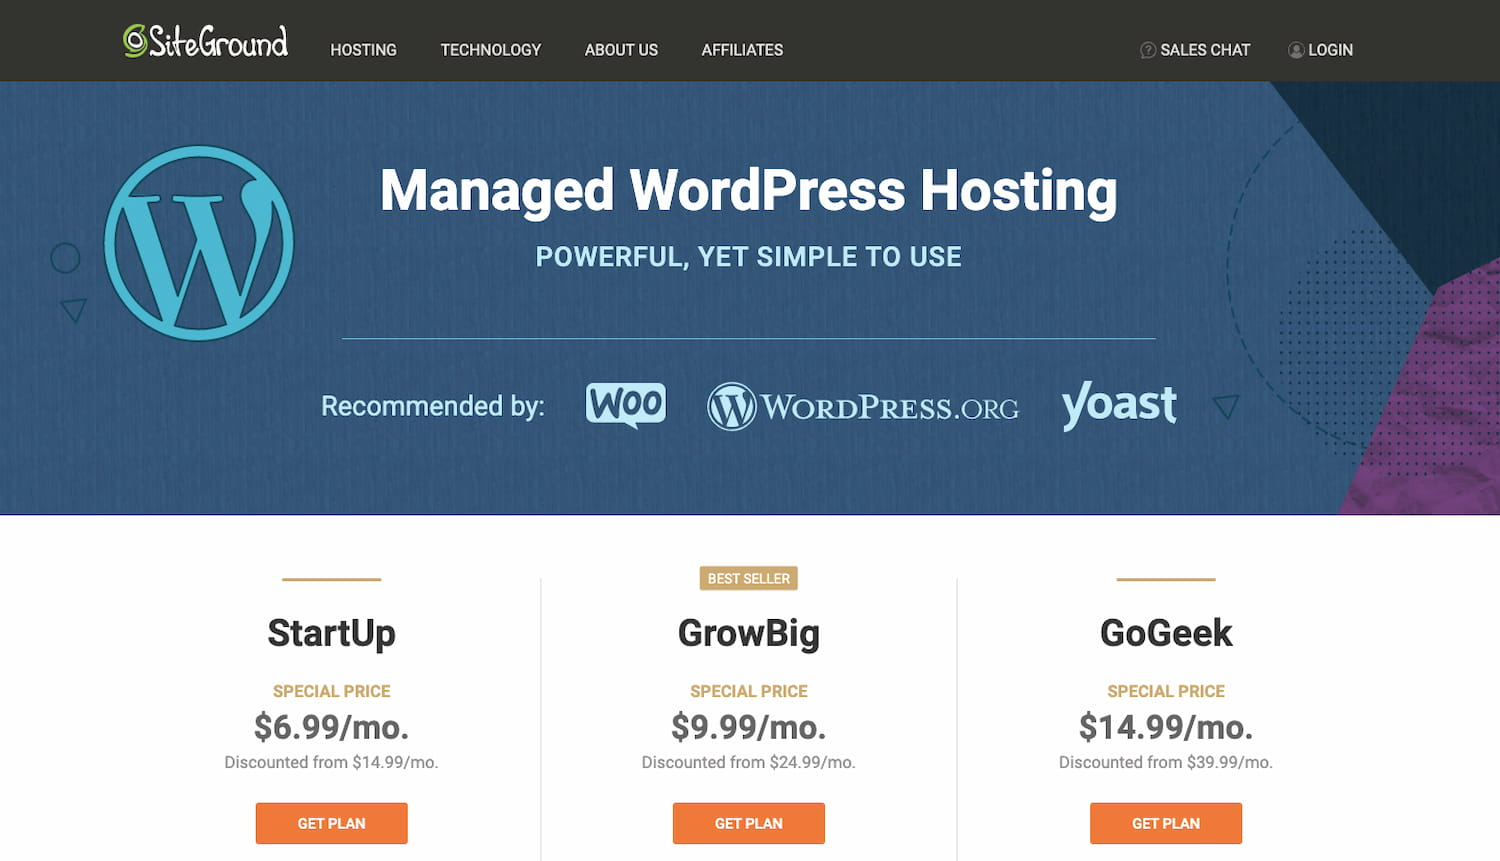 sign up for hosting plan with siteground or other provider when converting Wix to wordPress